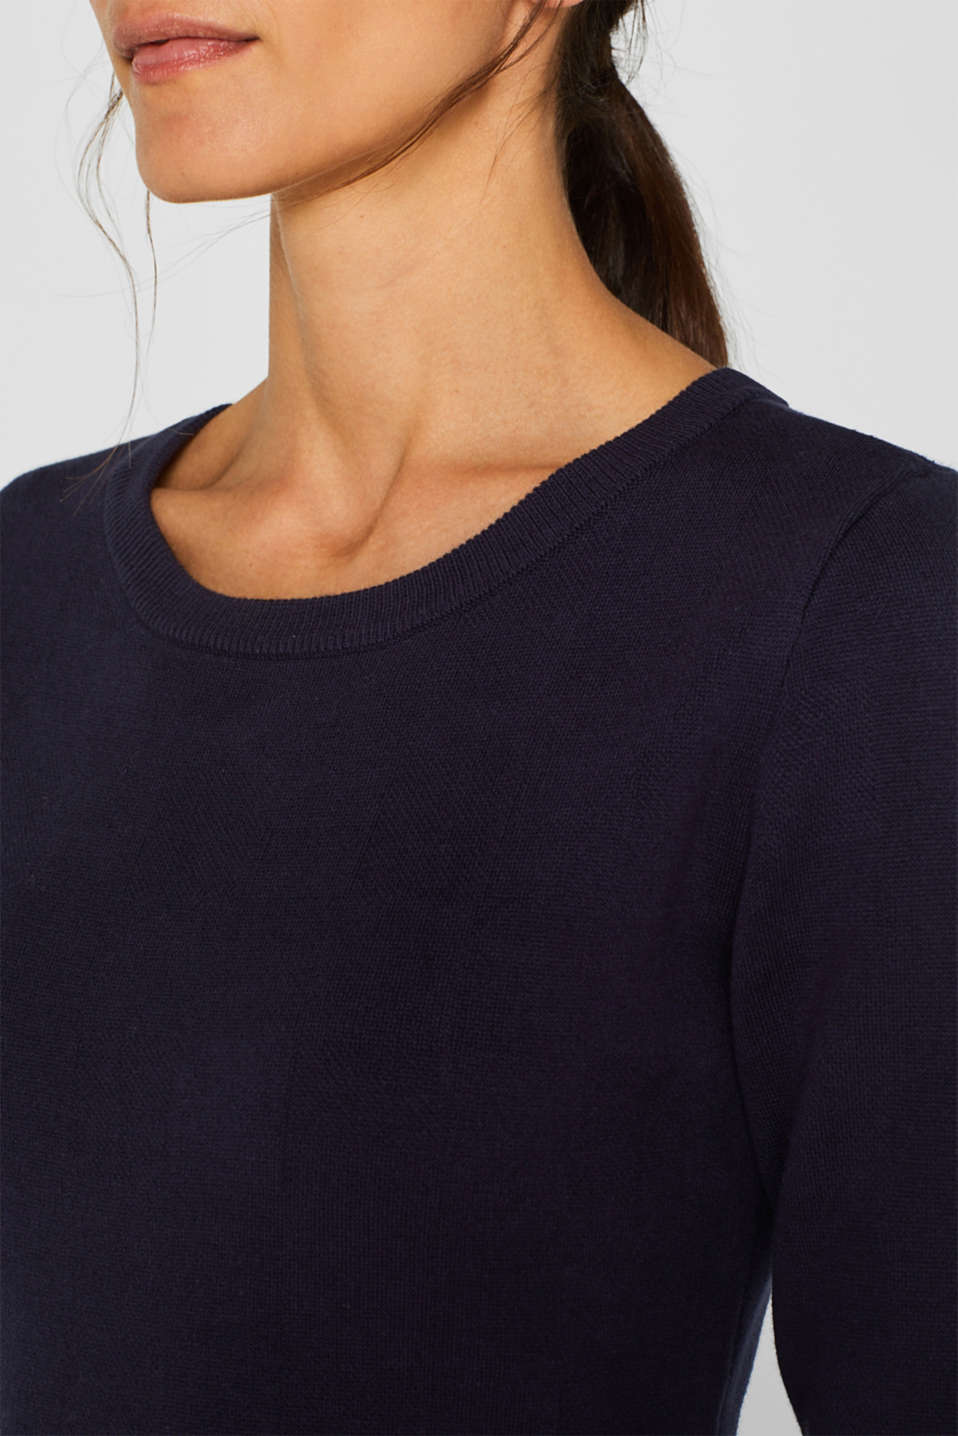 Compact knit dress in an A-line silhouette, NAVY, detail image number 3